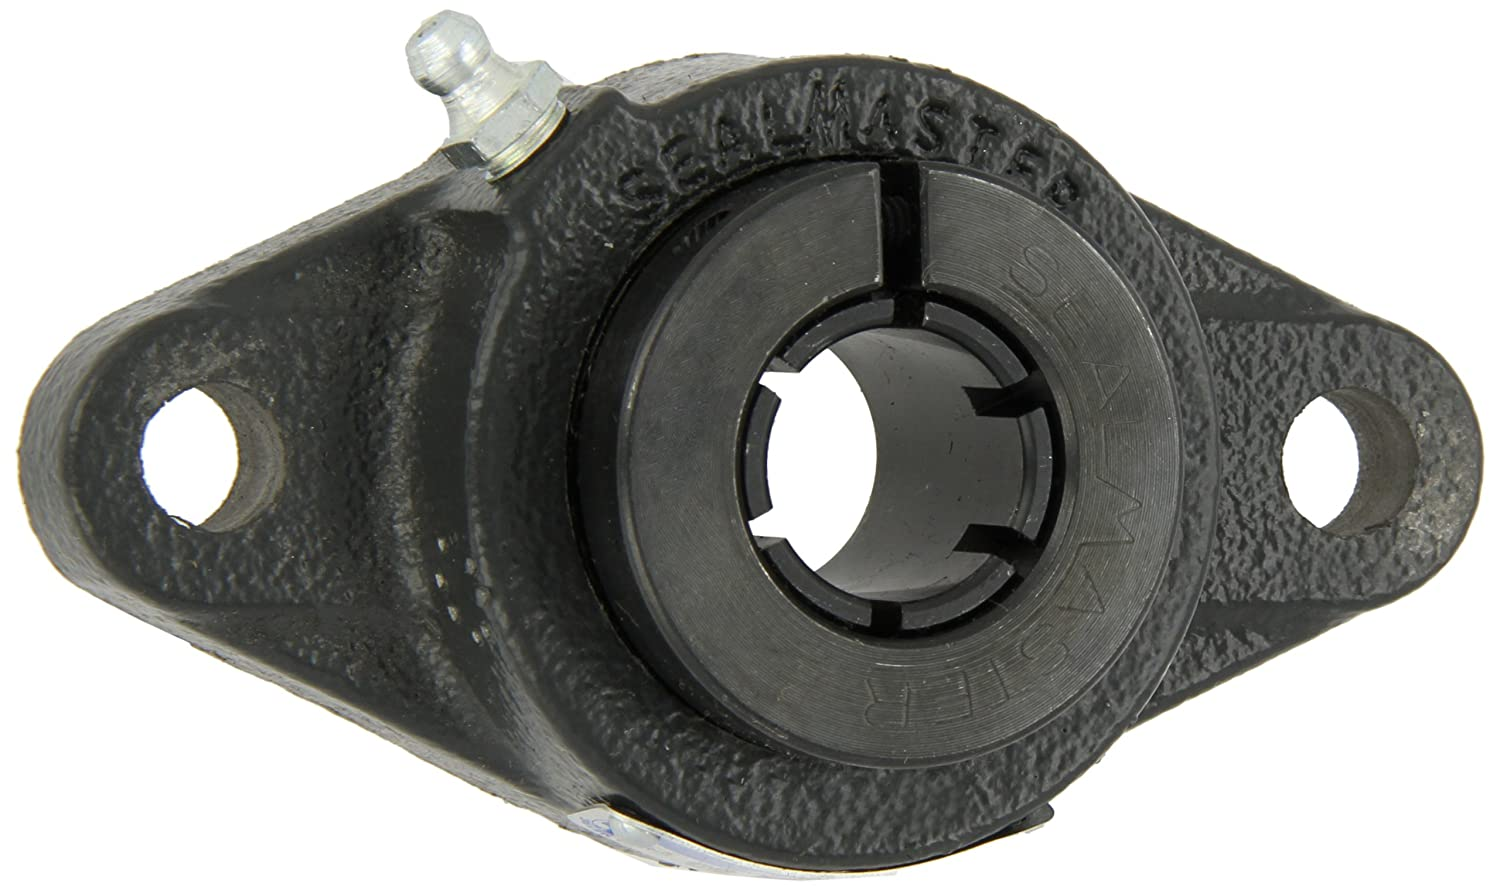 35mm Bore 5-1//8 Bolt Hole Spacing Width 6-1//8 Overall Length 9//16 Flange Height 6-1//8 Overall Length 9//16 Flange Height Regal Sealmaster SFT-207TMC Standard Duty Flange Unit Contact Seals Regreasable Skwezloc Collar Cast Iron Housing 2 Bolt